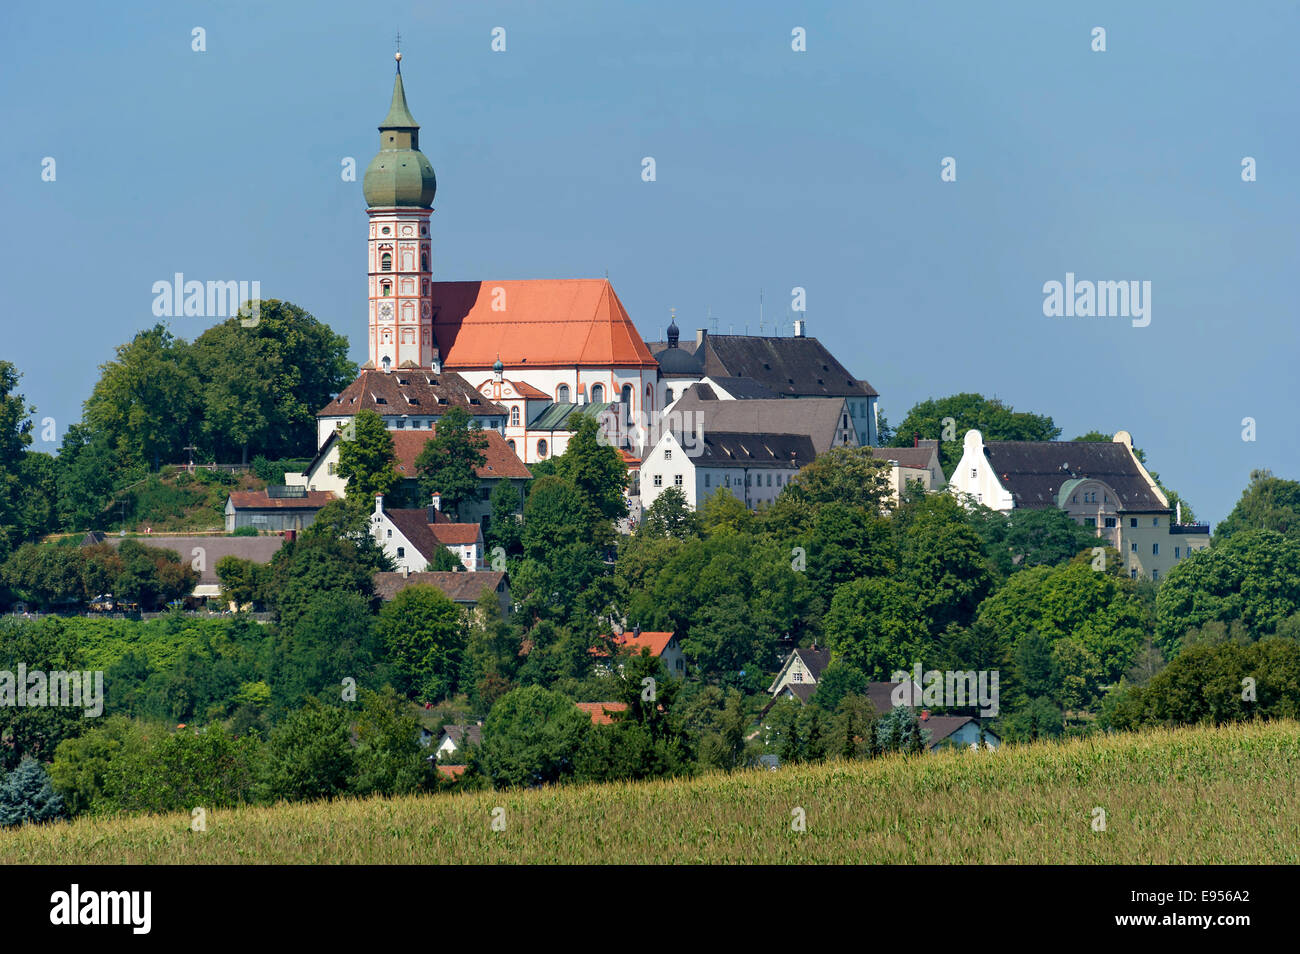 Klosterkirche Andechs monasterdy church, 'holy mountain' of Kloster Andechs, Oberbayern, Bavaria, Germany - Stock Image